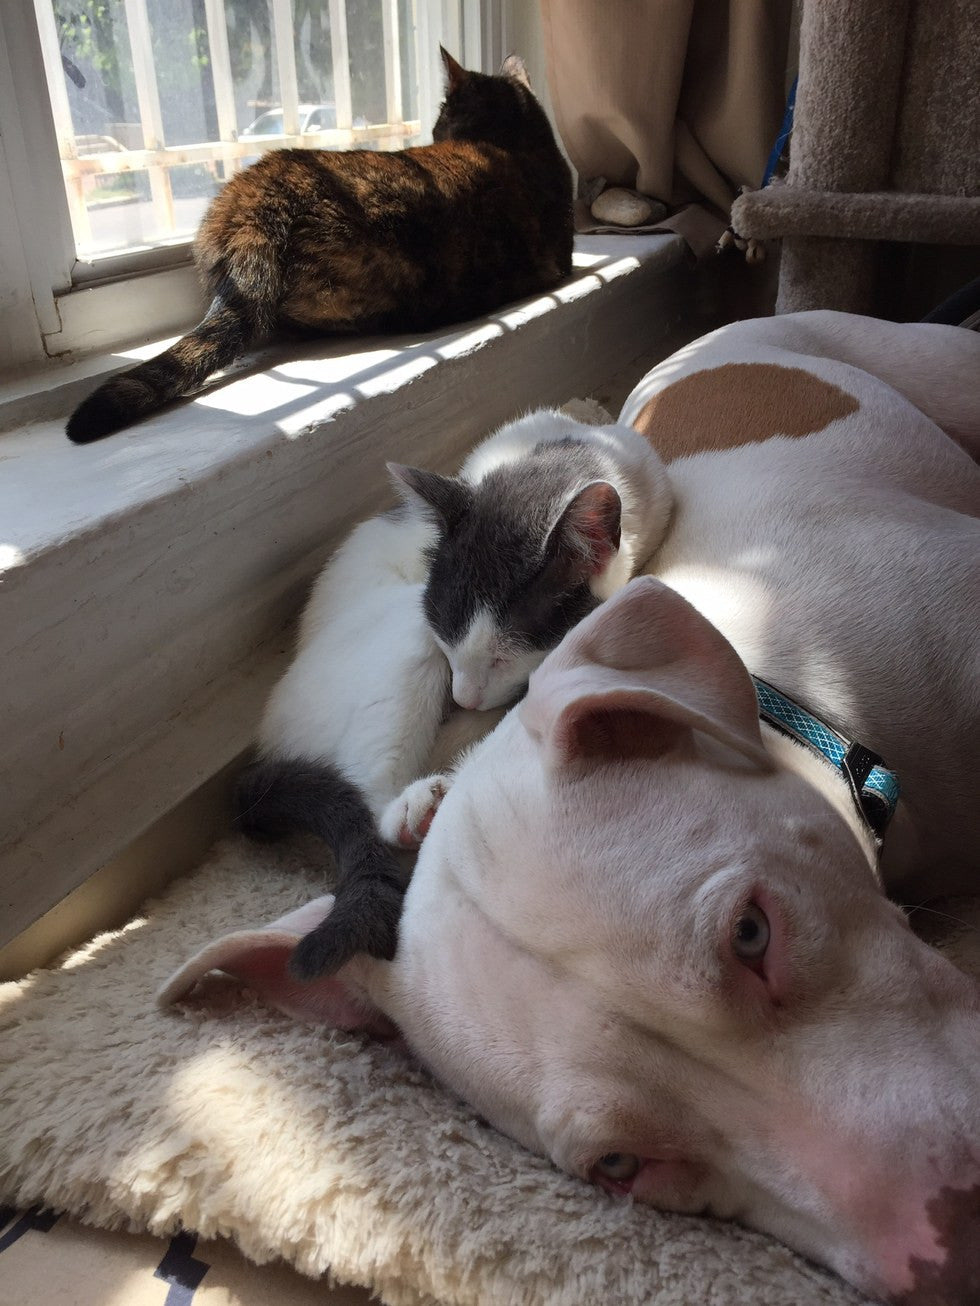 hugging kittens pit bull and cats